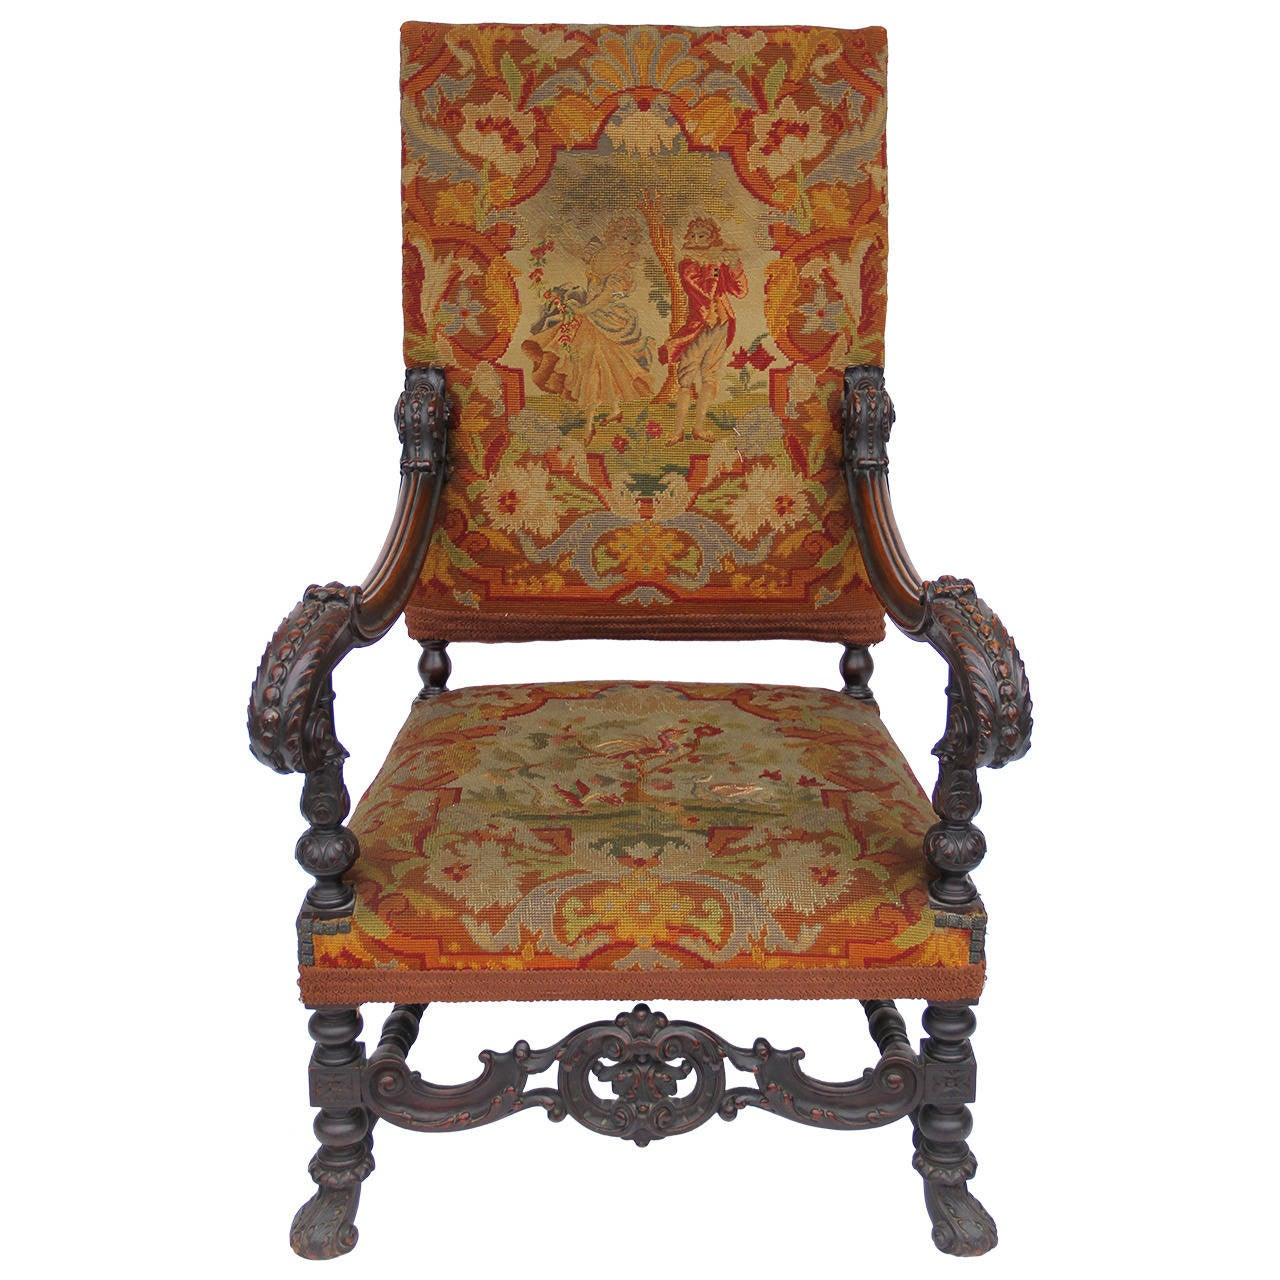 Antique Louis XIV Style Carved Fauteuil HighBack Armchair With - Fauteuil louis xiv